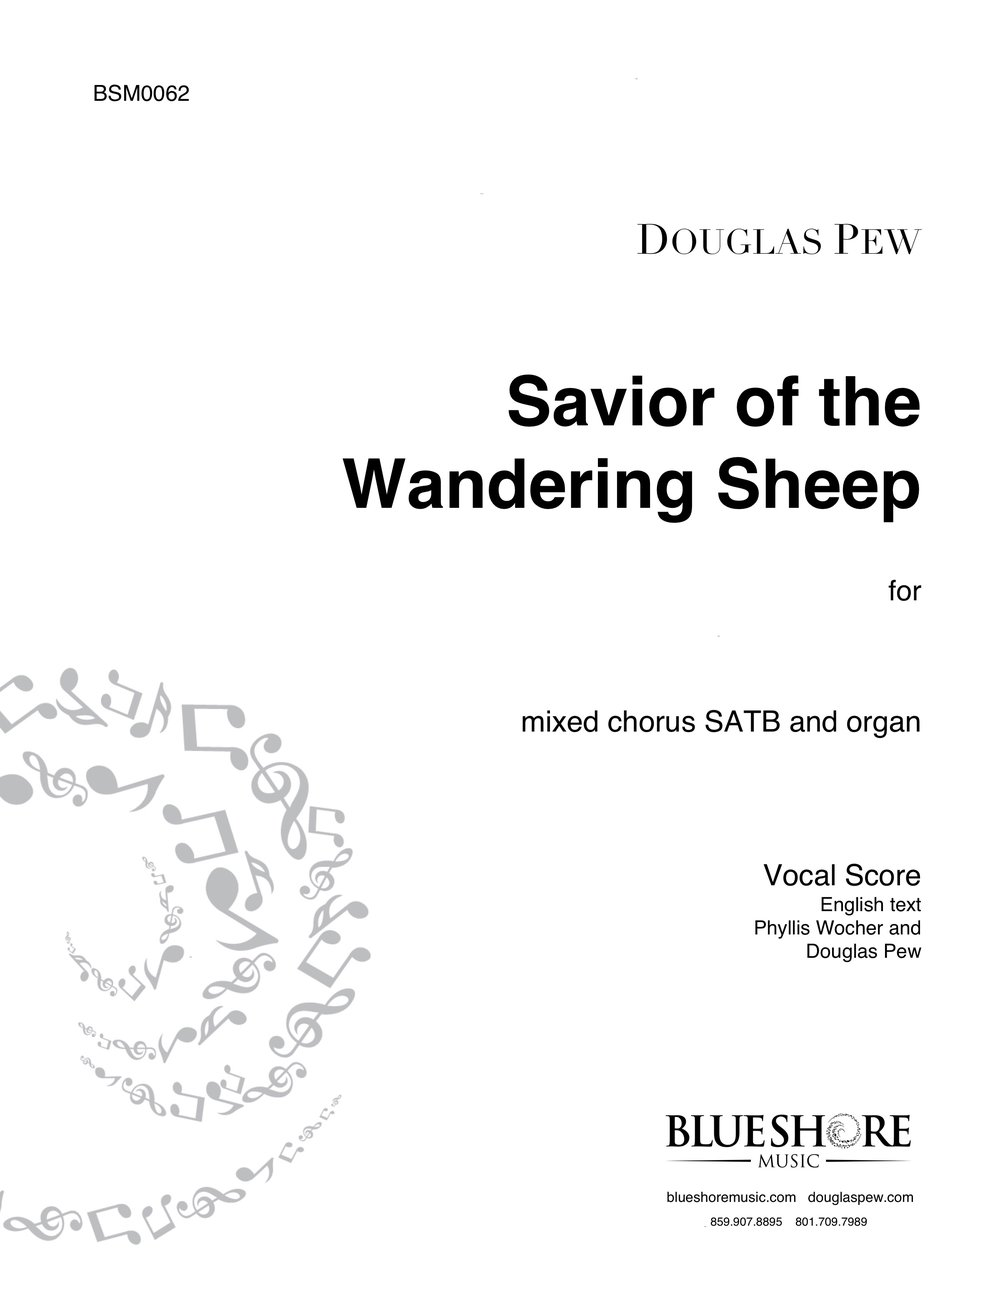 Savior of the Wandering Sheep